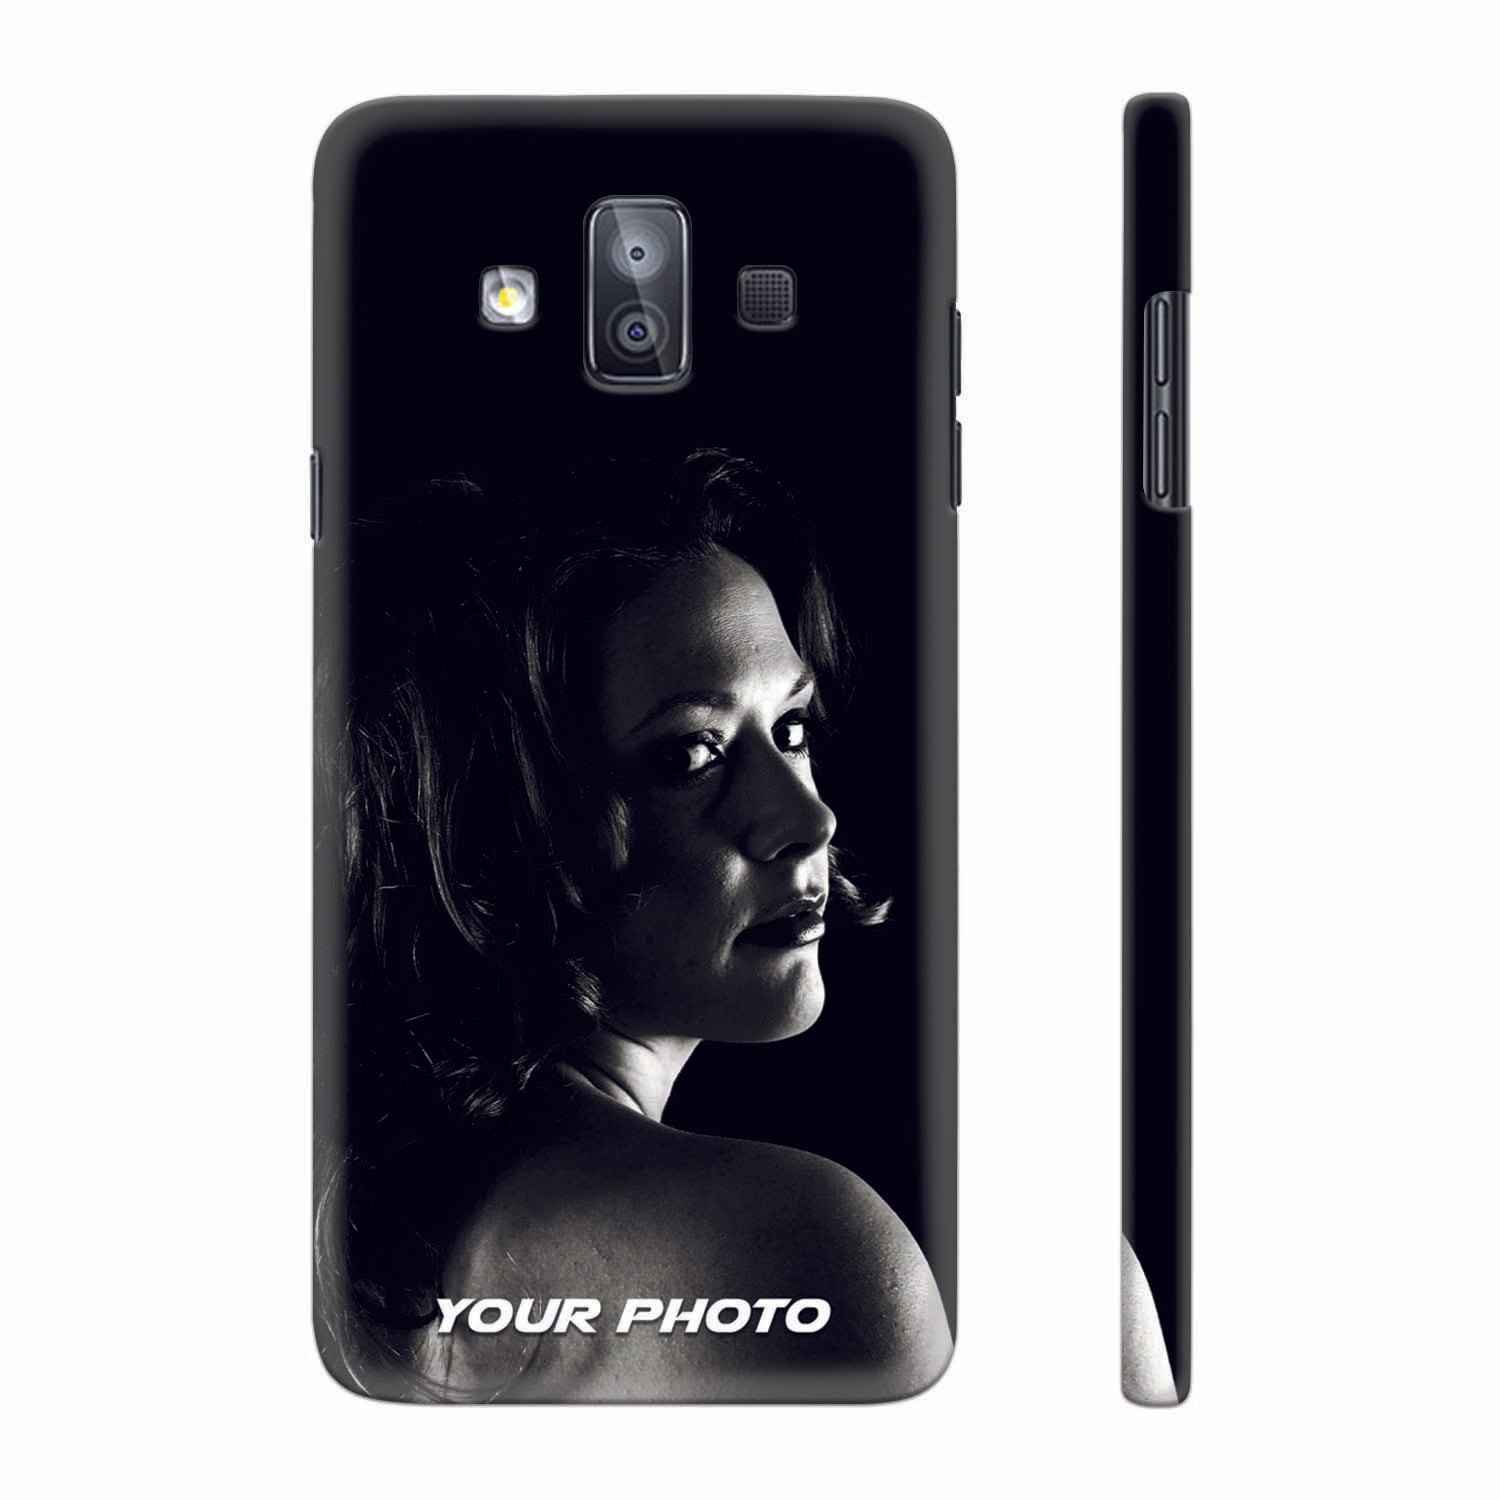 brand new 5e51d e63fb Mobile Cover with Your Photo for Samsung Galaxy J7 Duo